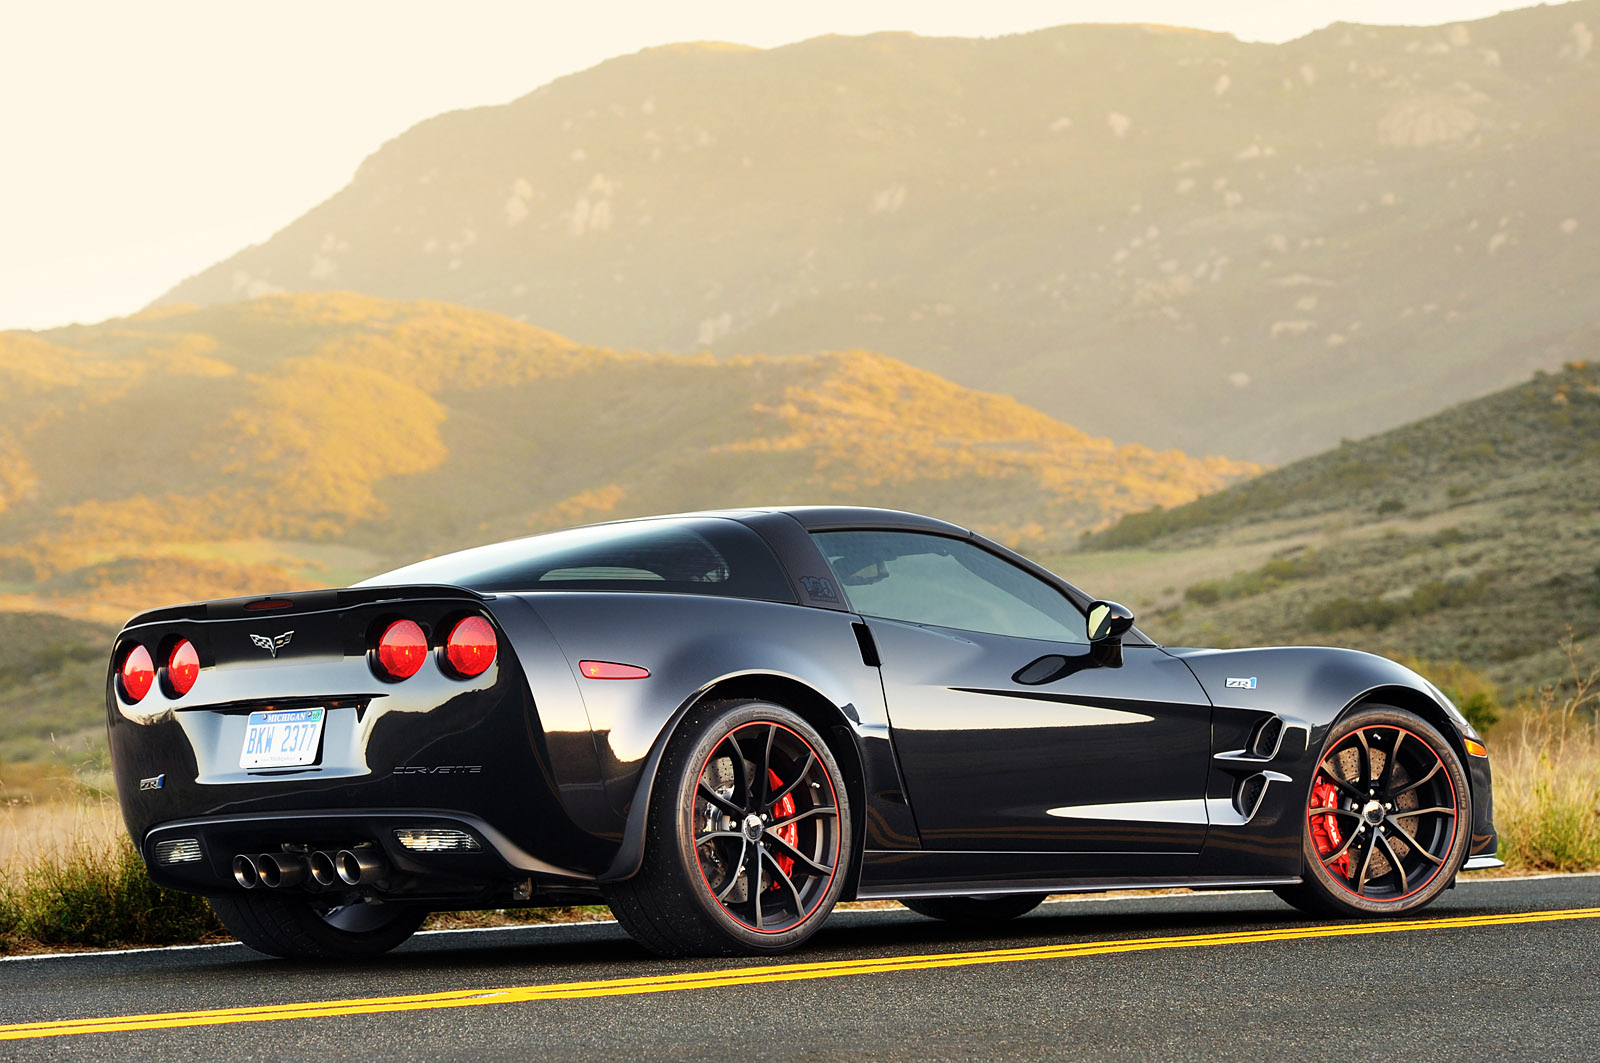 2012 Chevrolet Corvette Zr1 W Video Autoblog